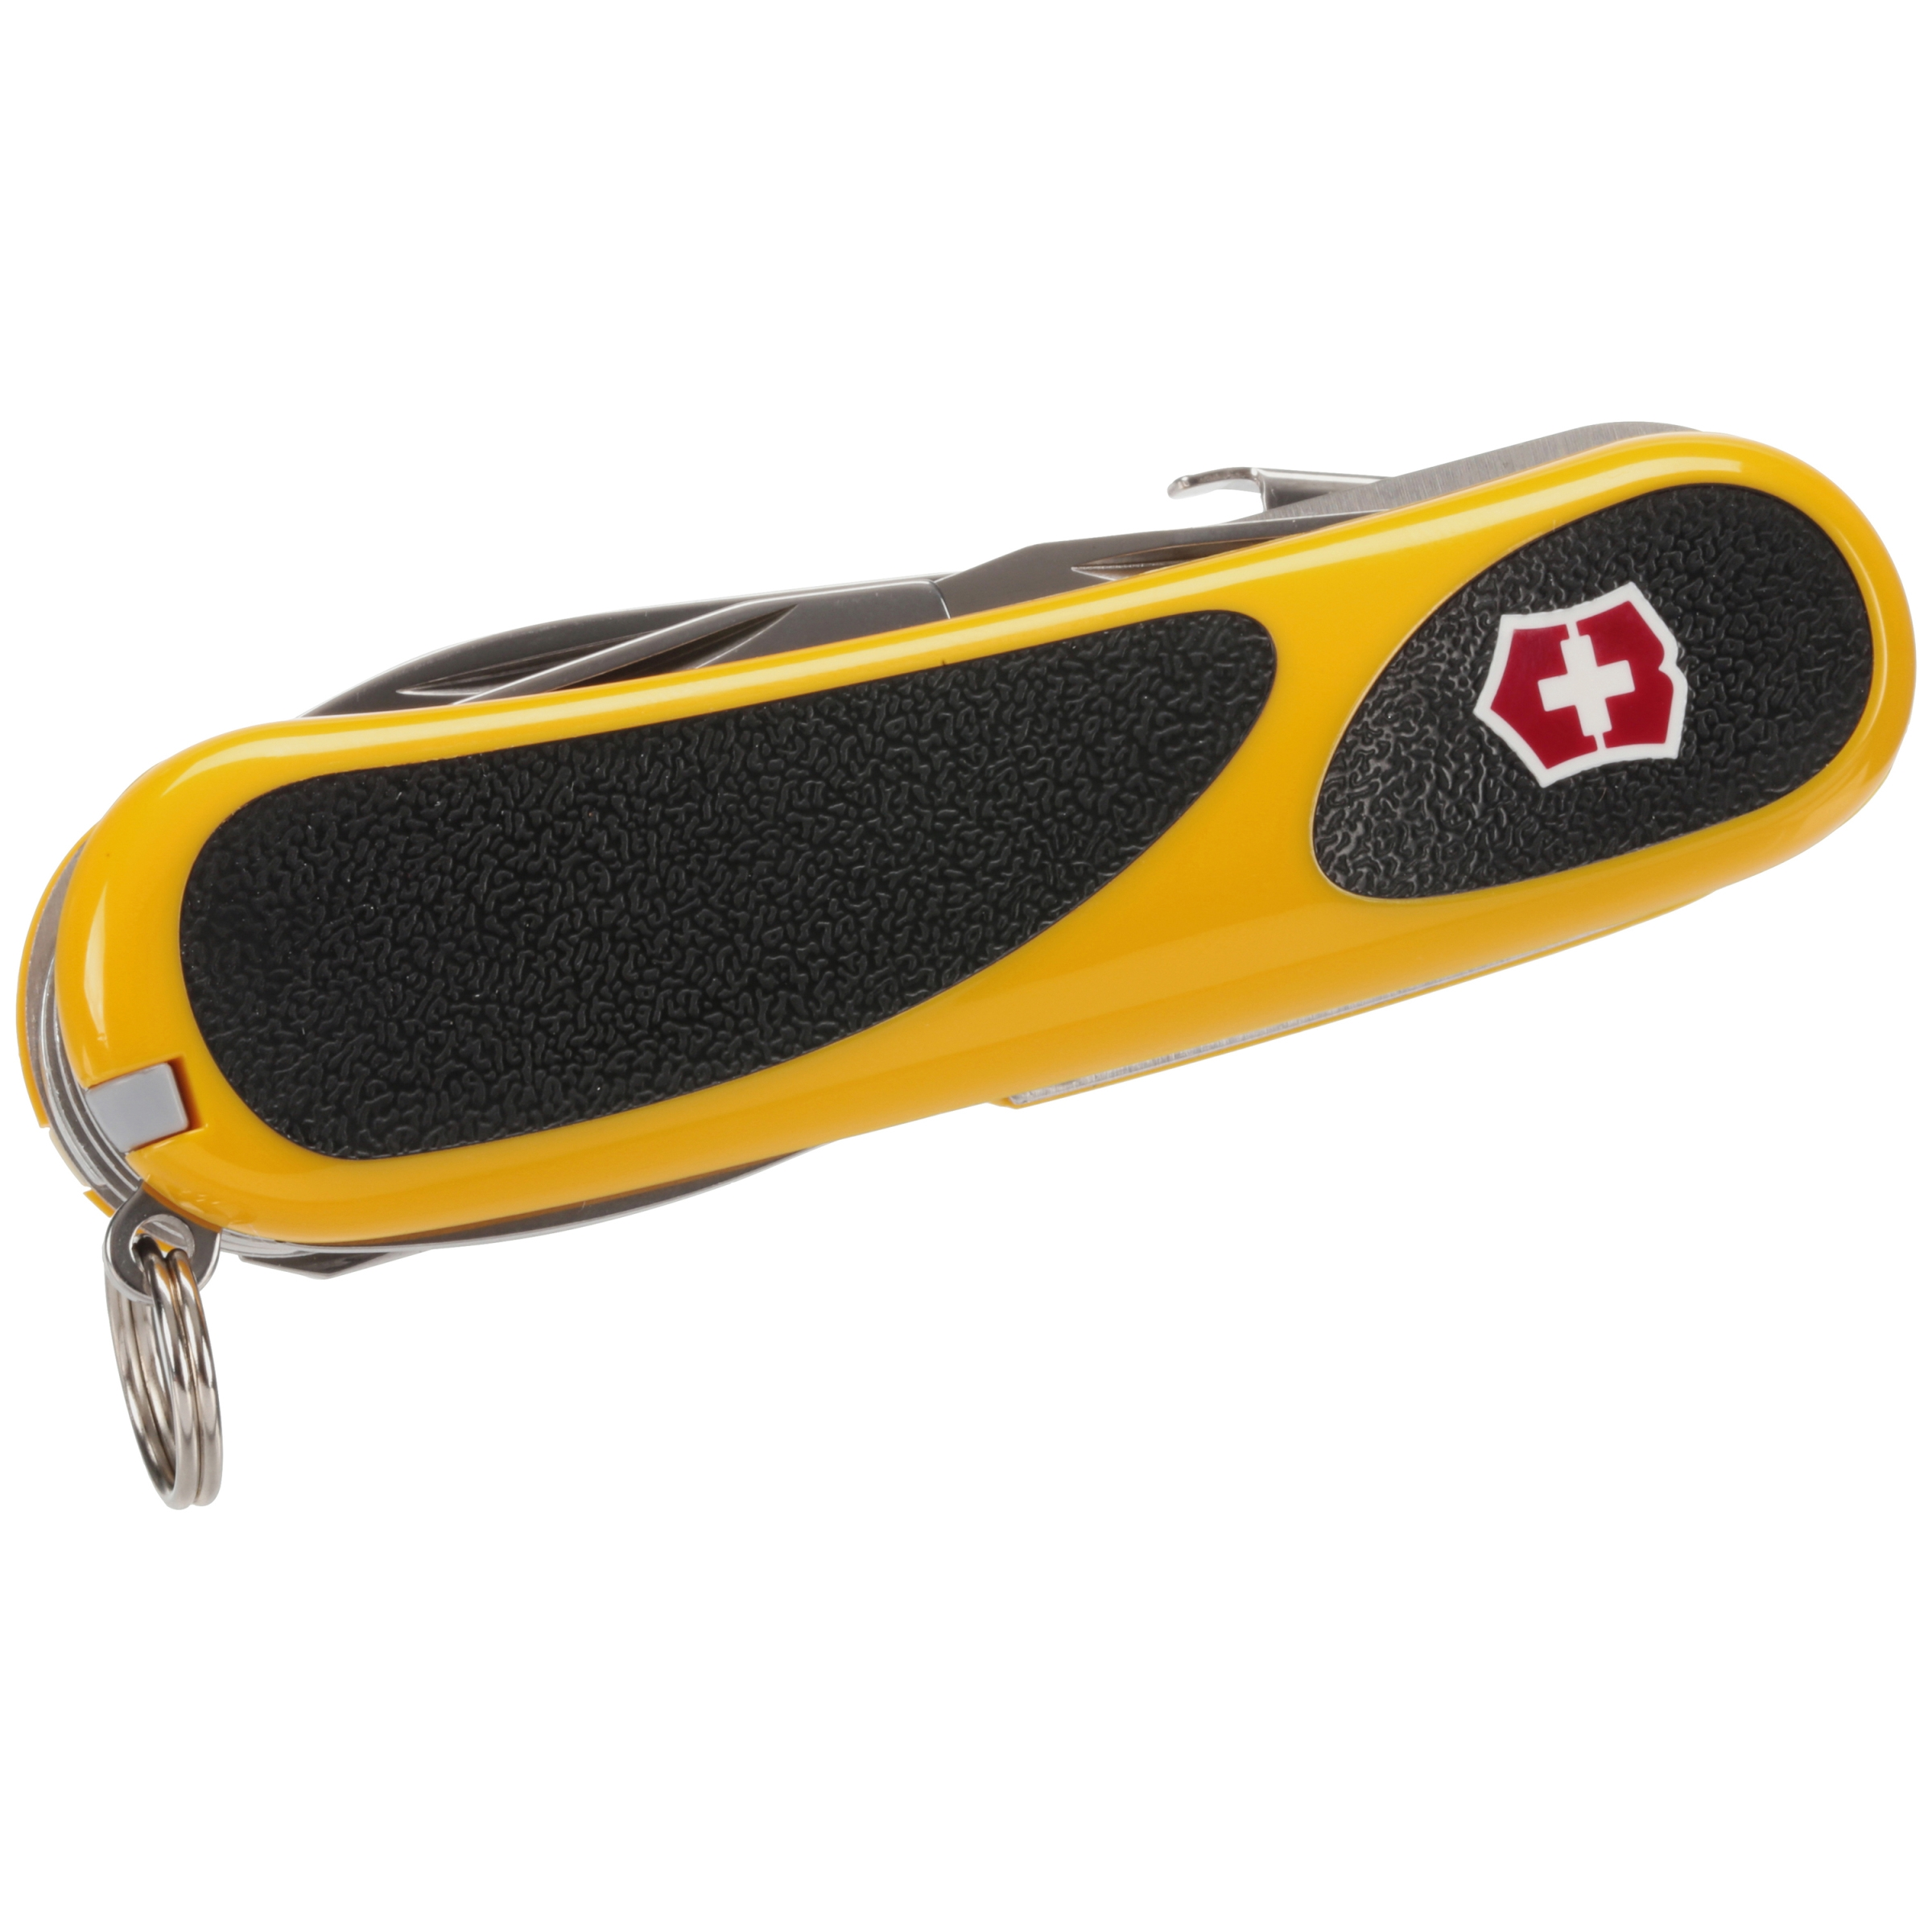 Victorinox Swiss Army Yellow/Black EvoGripS18 Knife